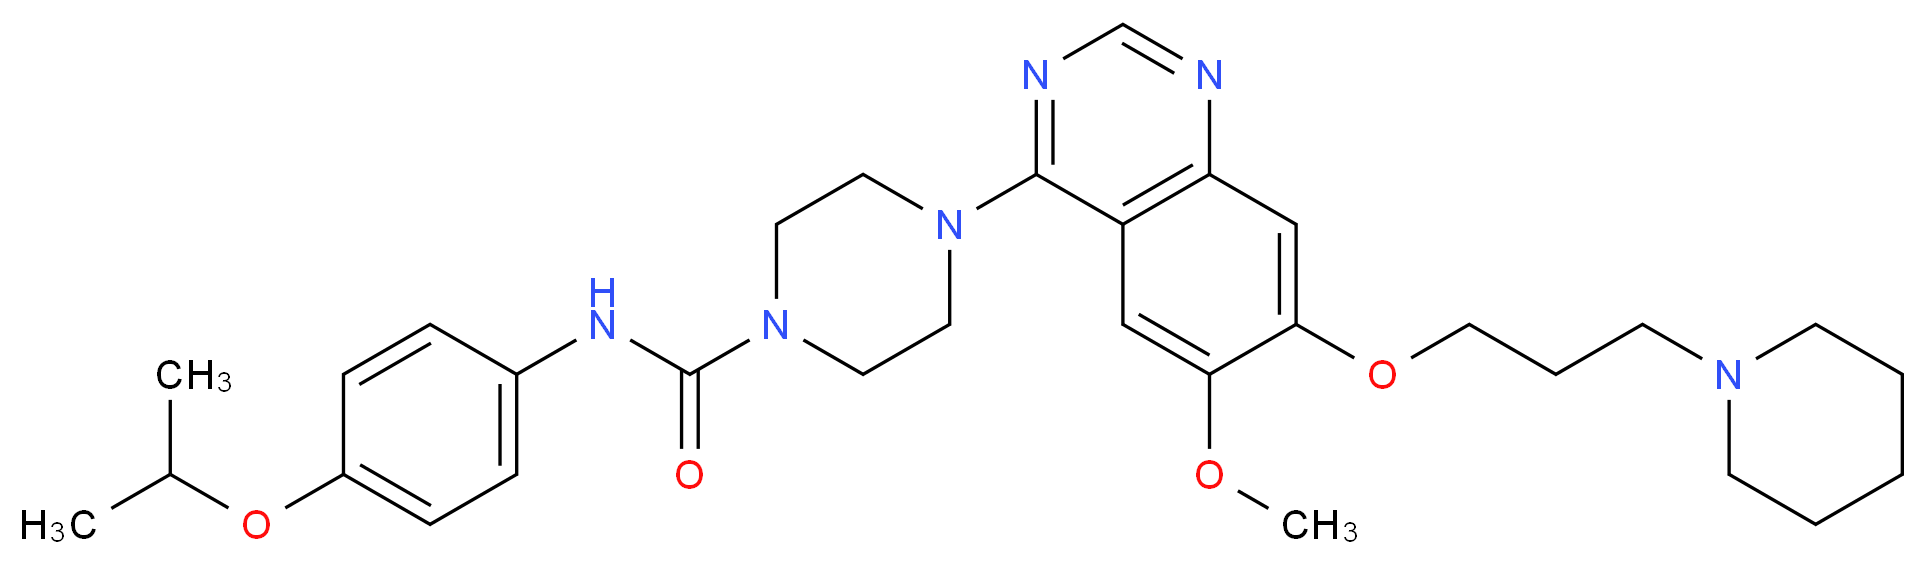 4-{6-methoxy-7-[3-(piperidin-1-yl)propoxy]quinazolin-4-yl}-N-[4-(propan-2-yloxy)phenyl]piperazine-1-carboxamide_分子结构_CAS_387867-13-2